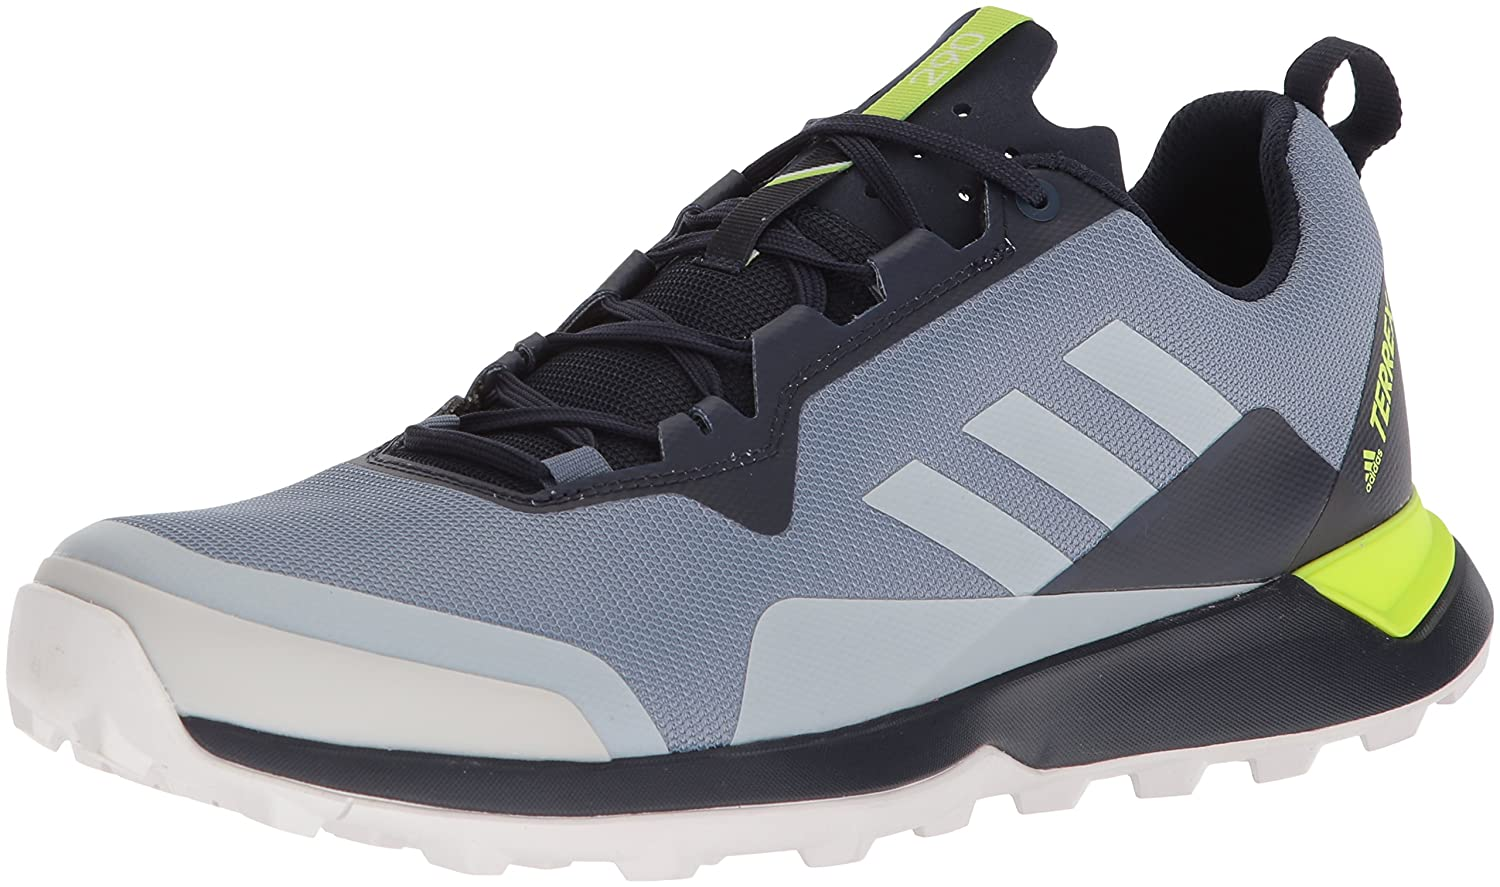 Adidas outdoor Men's Terrex CMTK Walking Schuhe, Raw Steel Grau One Orange, 14 D US